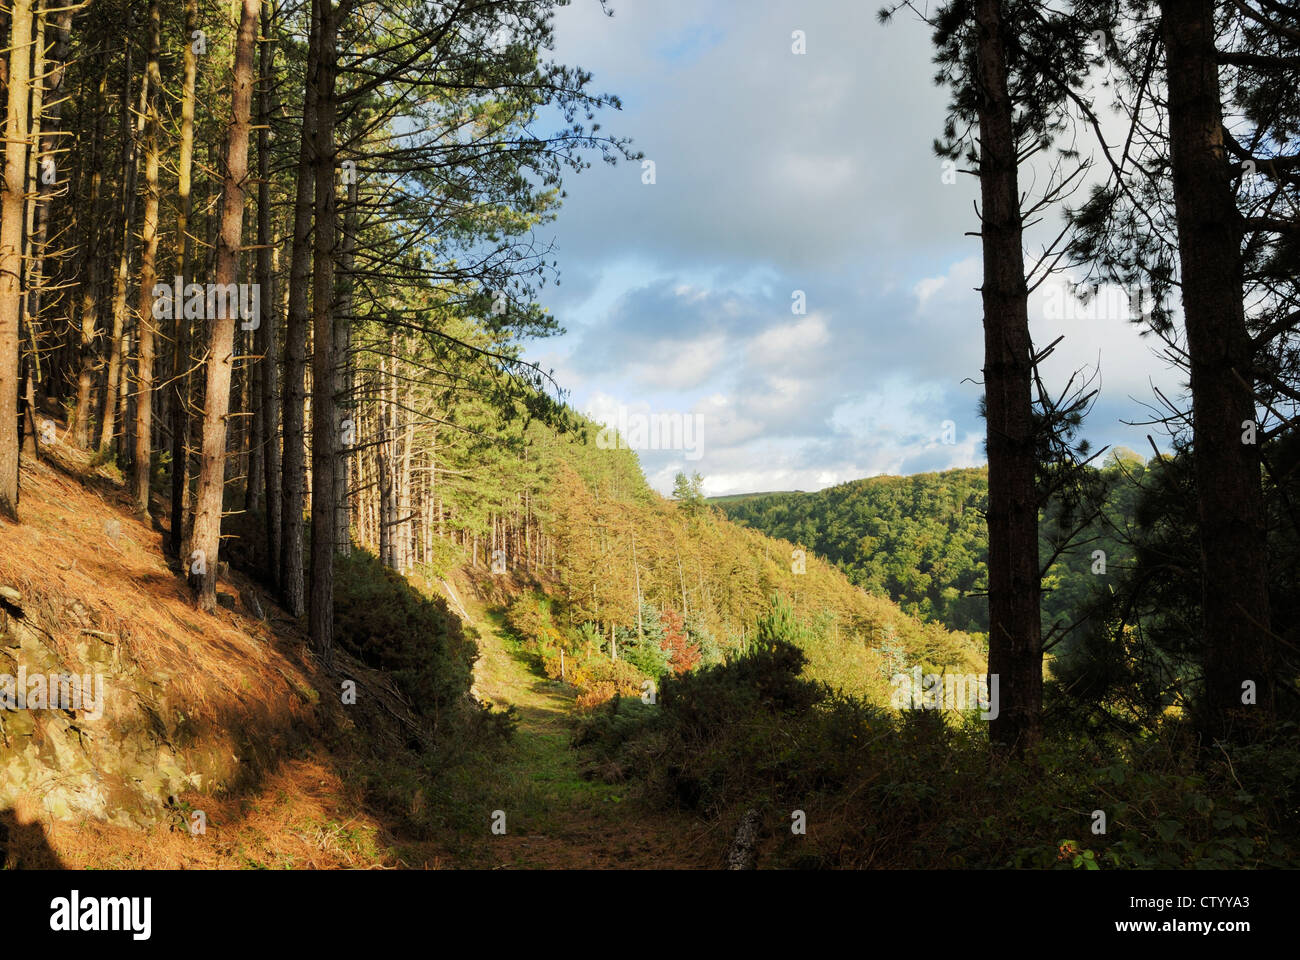 Track through conifer woodland, Tir Sisial, Wales. Stock Photo